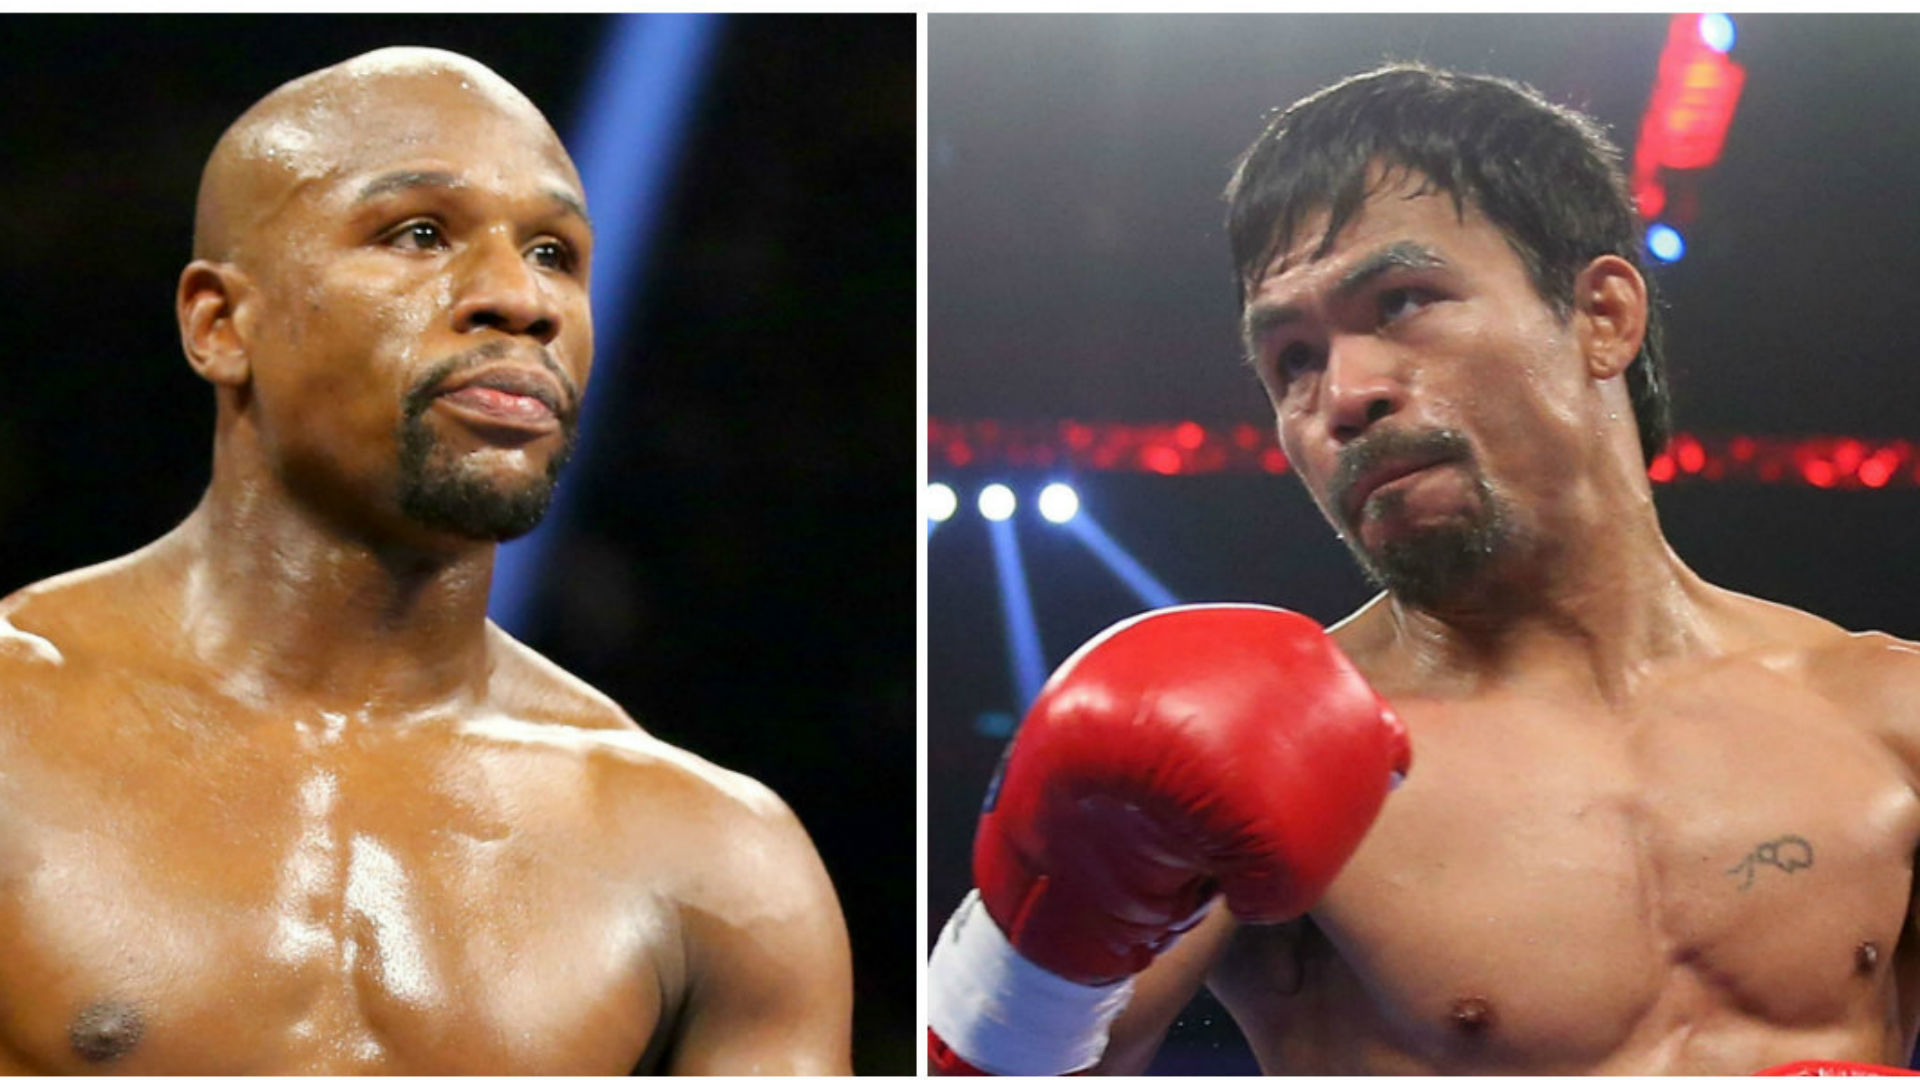 Mayweather vs. Pacquiao set to make Las Vegas betting history